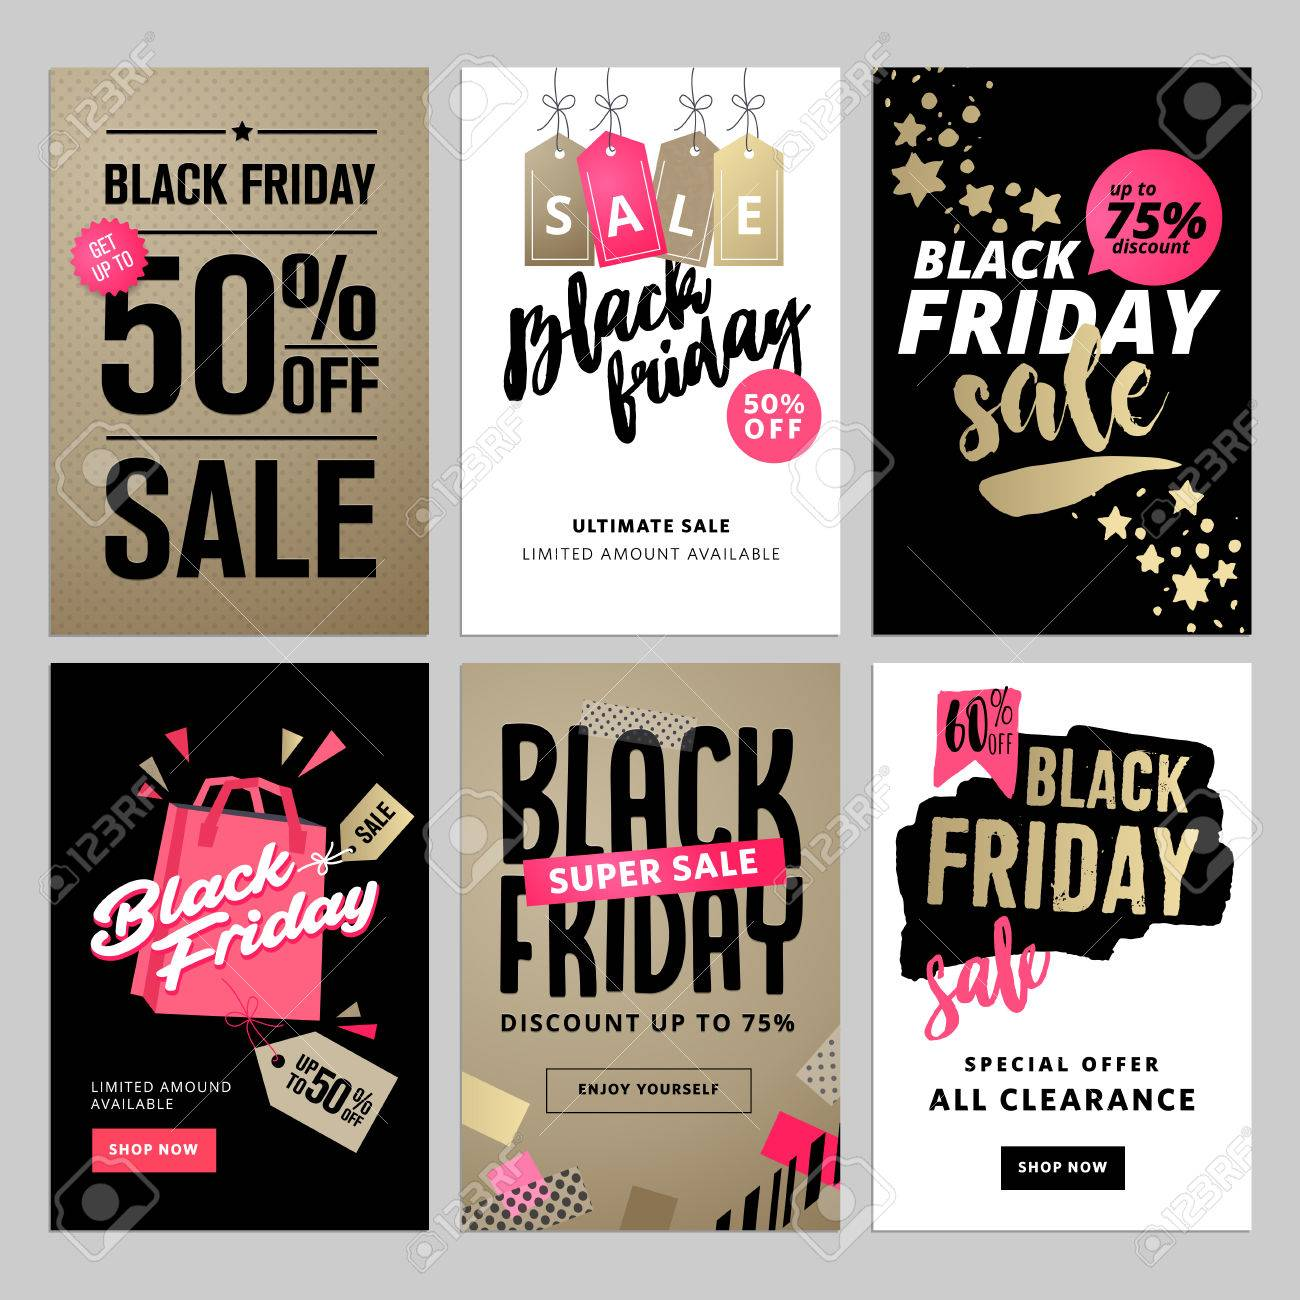 Set of mobile sale banners. Black Friday sale banners. Vector illustrations of online shopping website and mobile website banners, posters, newsletter designs, ads, coupons, social media banners. - 66002997